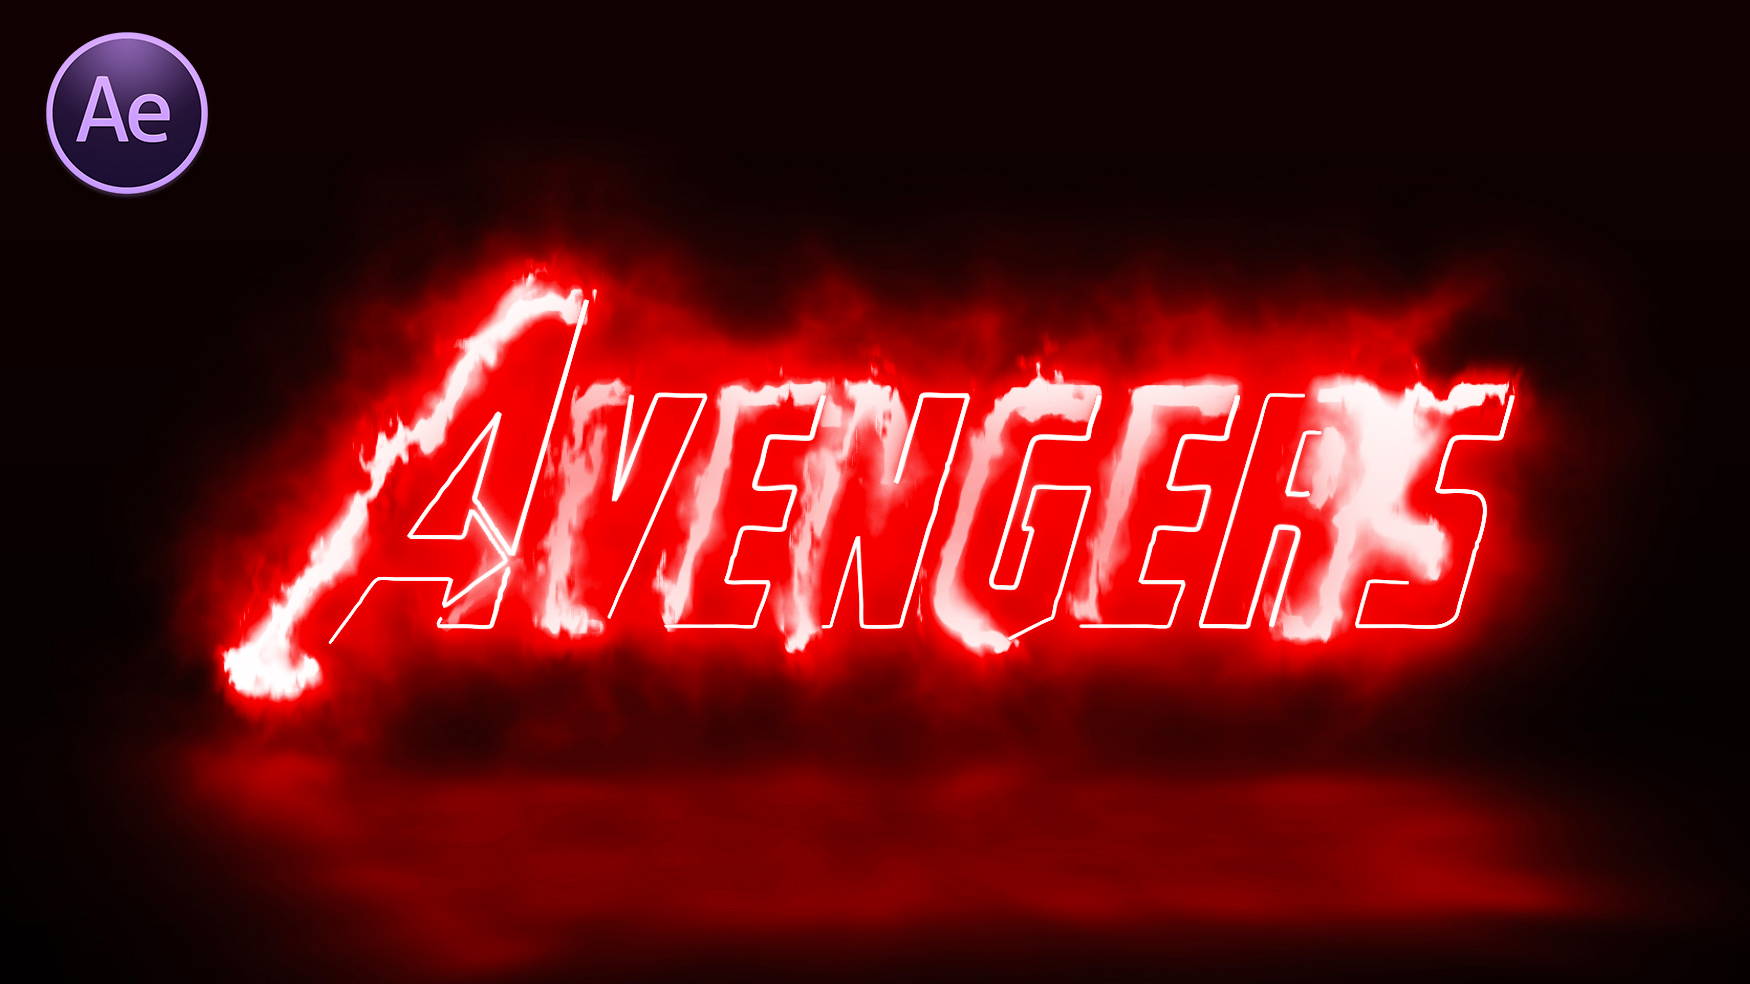 Avengers Logo Animation in After Effect | After Effect Movie Logo Animation Tutorial